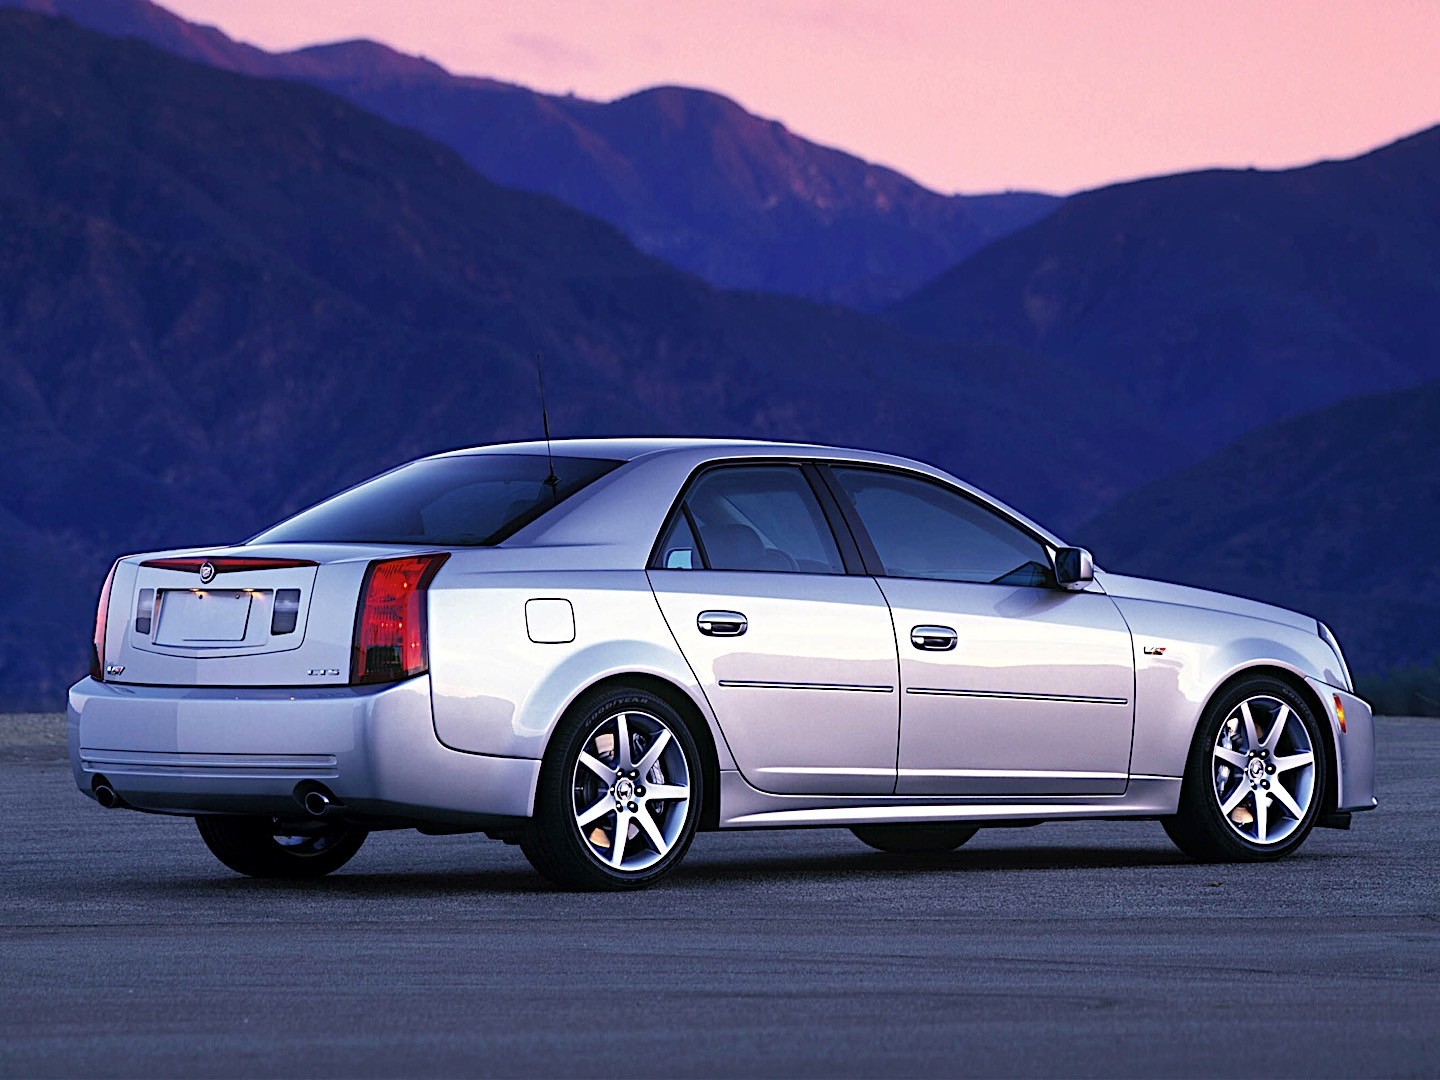 Cadillac Cts Engine together with Cts as well Hqdefault moreover Cadillac Cts V in addition Cts. on 2003 cadillac cts engine